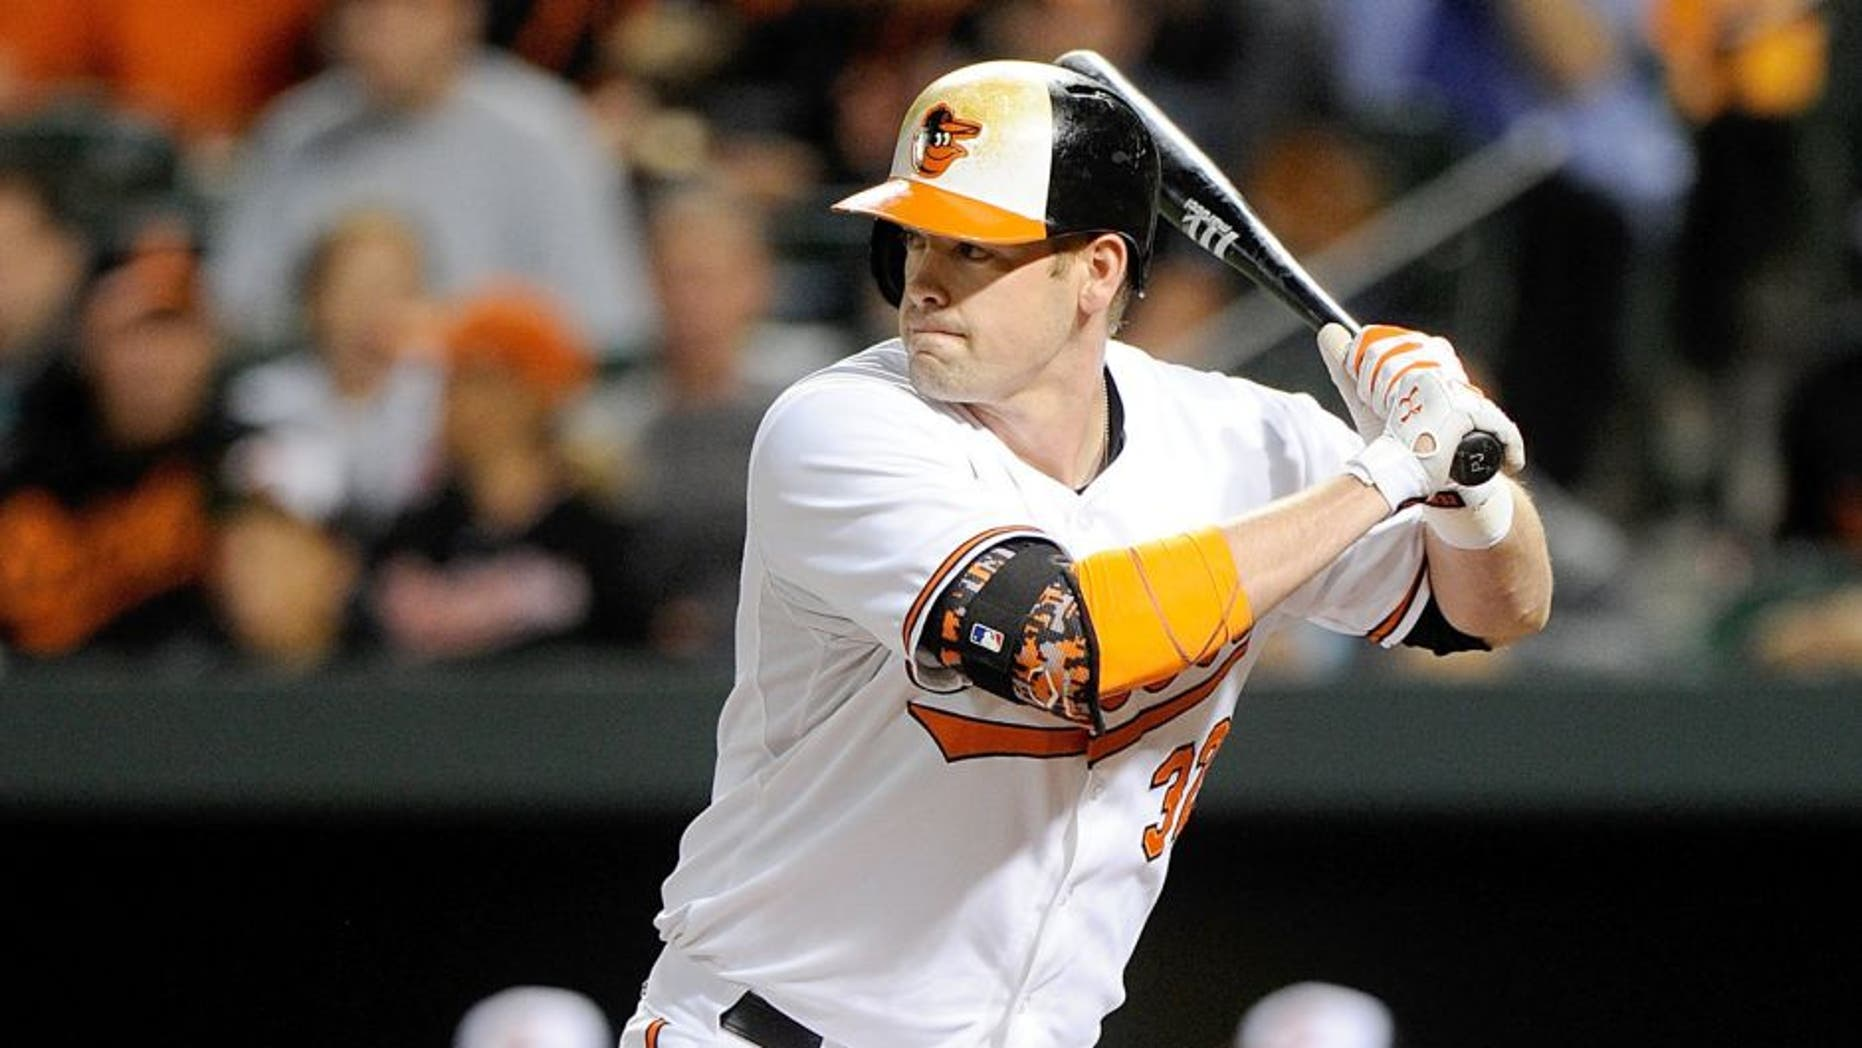 BALTIMORE, MD - SEPTEMBER 13: Matt Wieters #32 of the Baltimore Orioles bats against the Kansas City Royals at Oriole Park at Camden Yards on September 13, 2015 in Baltimore, Maryland. (Photo by G Fiume/Getty Images)